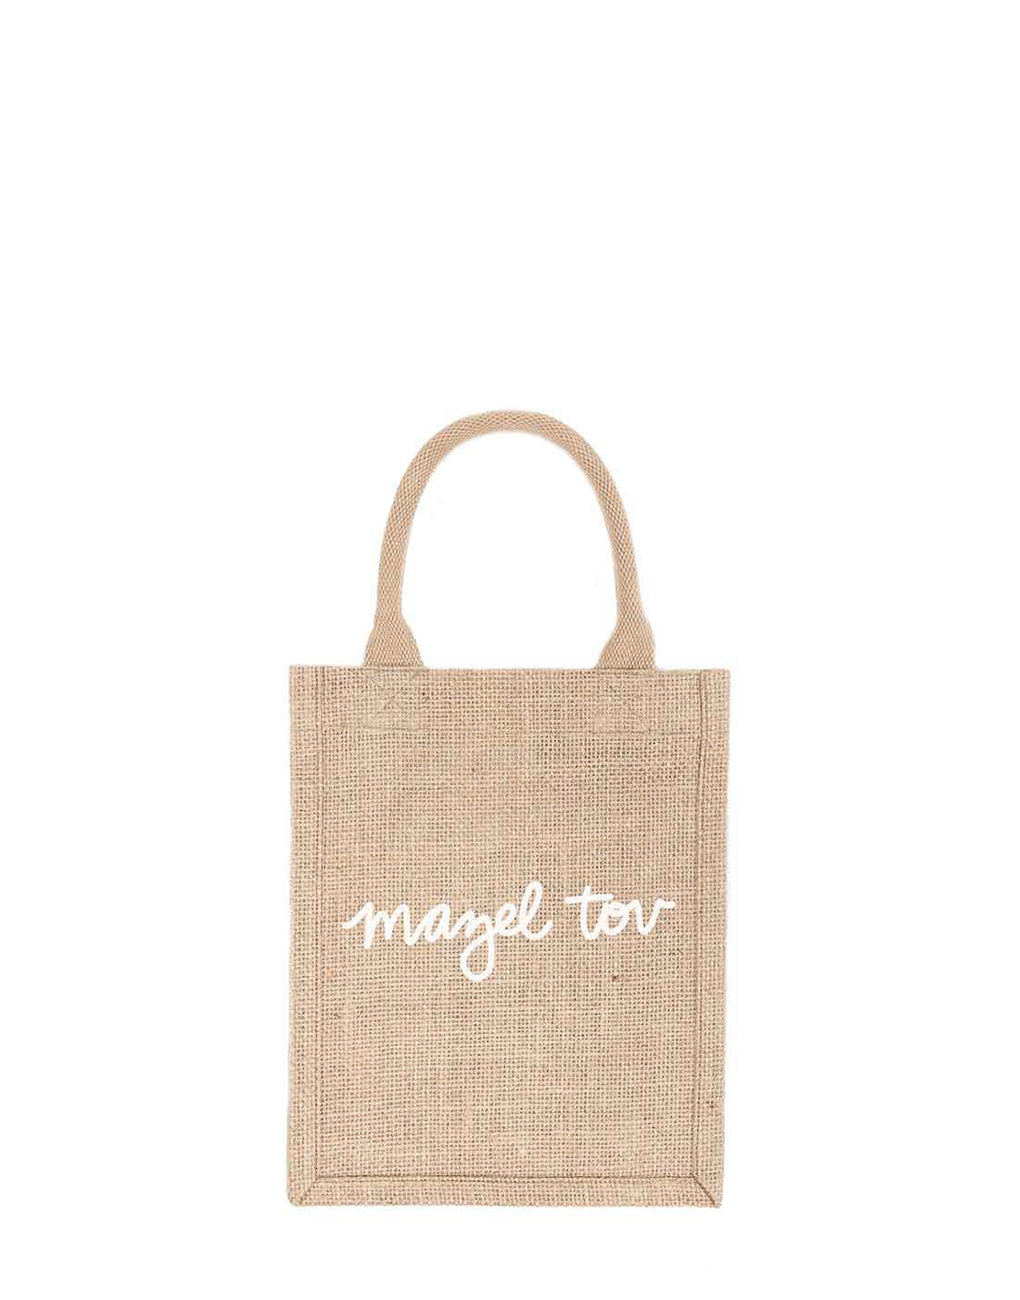 Small Mazel Tov Reusable Gift Tote In White Font | The Little Market